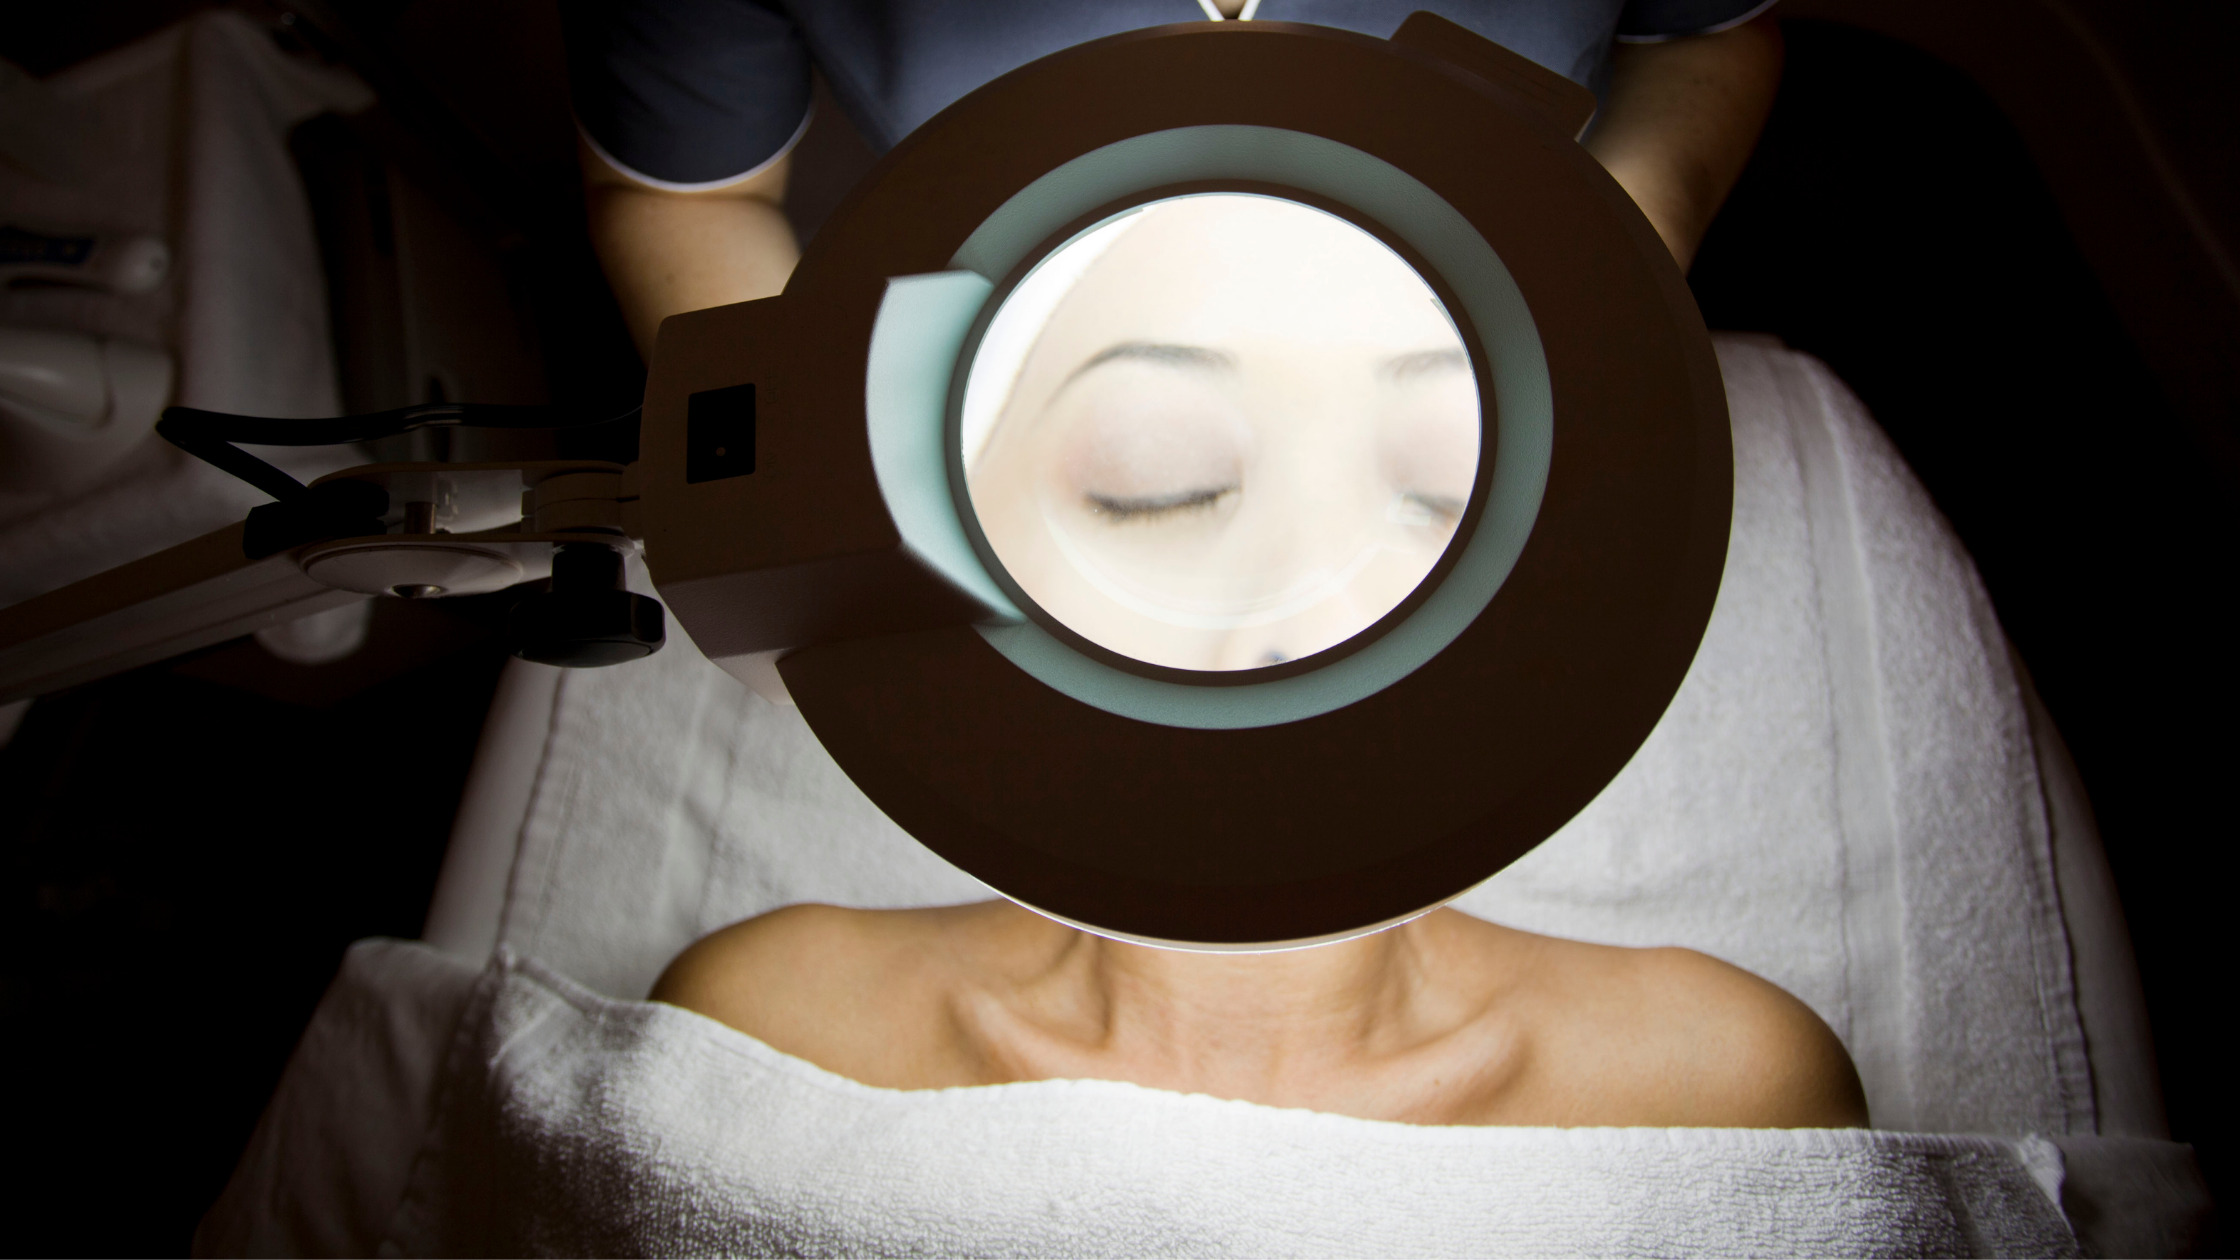 skin analysis under magnifying lamp